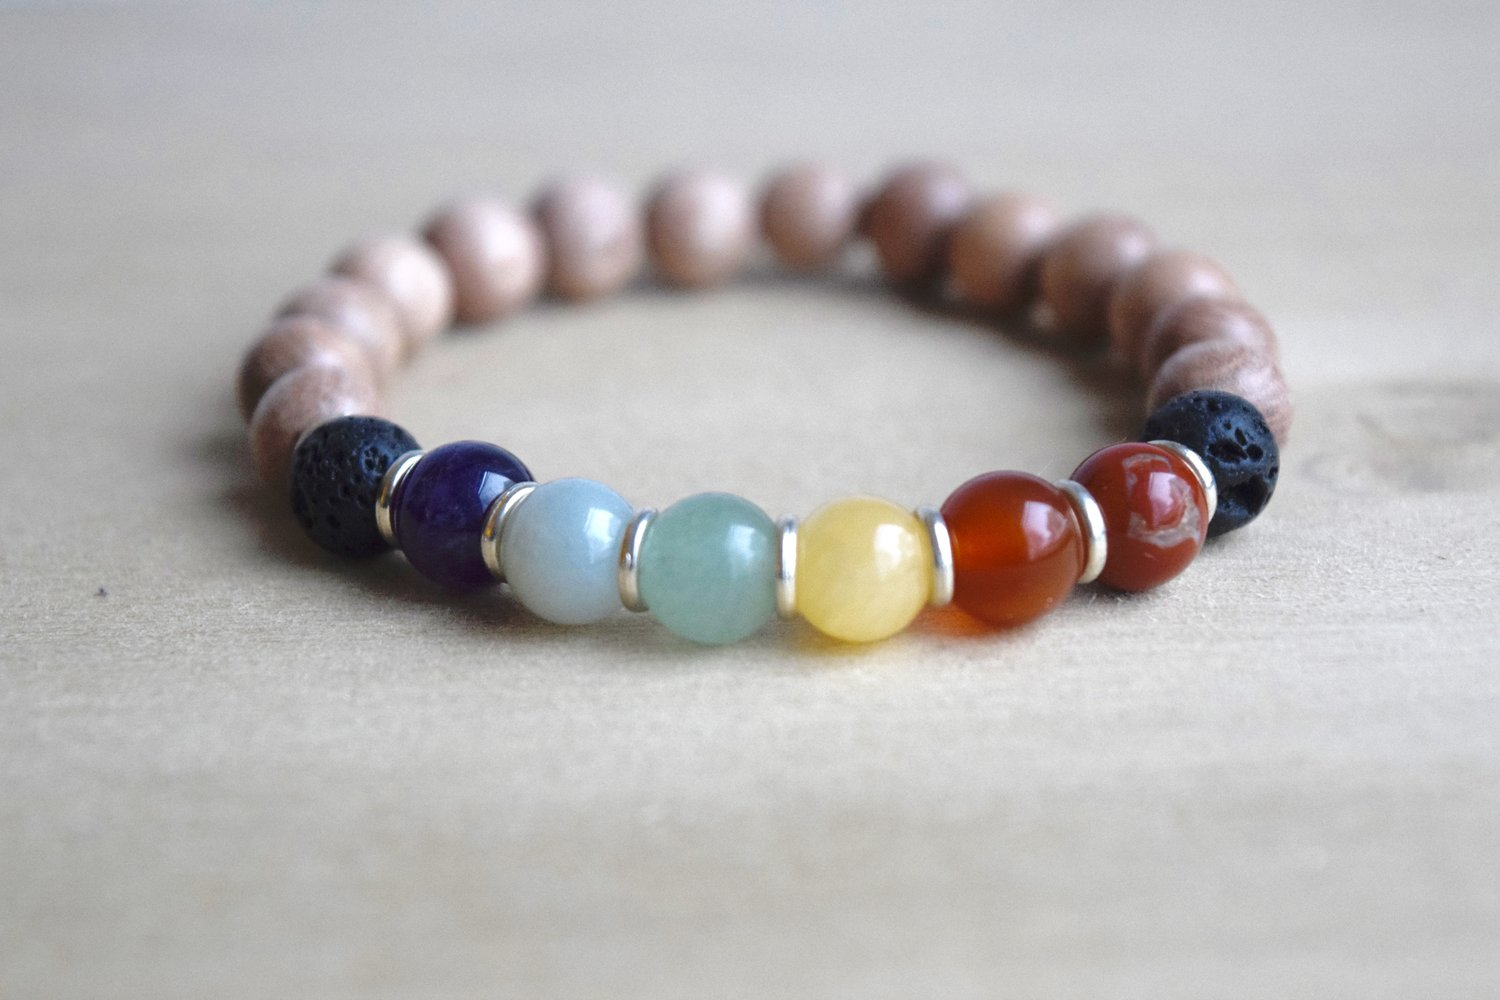 wood healing power bracelets the metals bracelet properties gemstones with individual therapy of precious combine minerals amulet color my horn